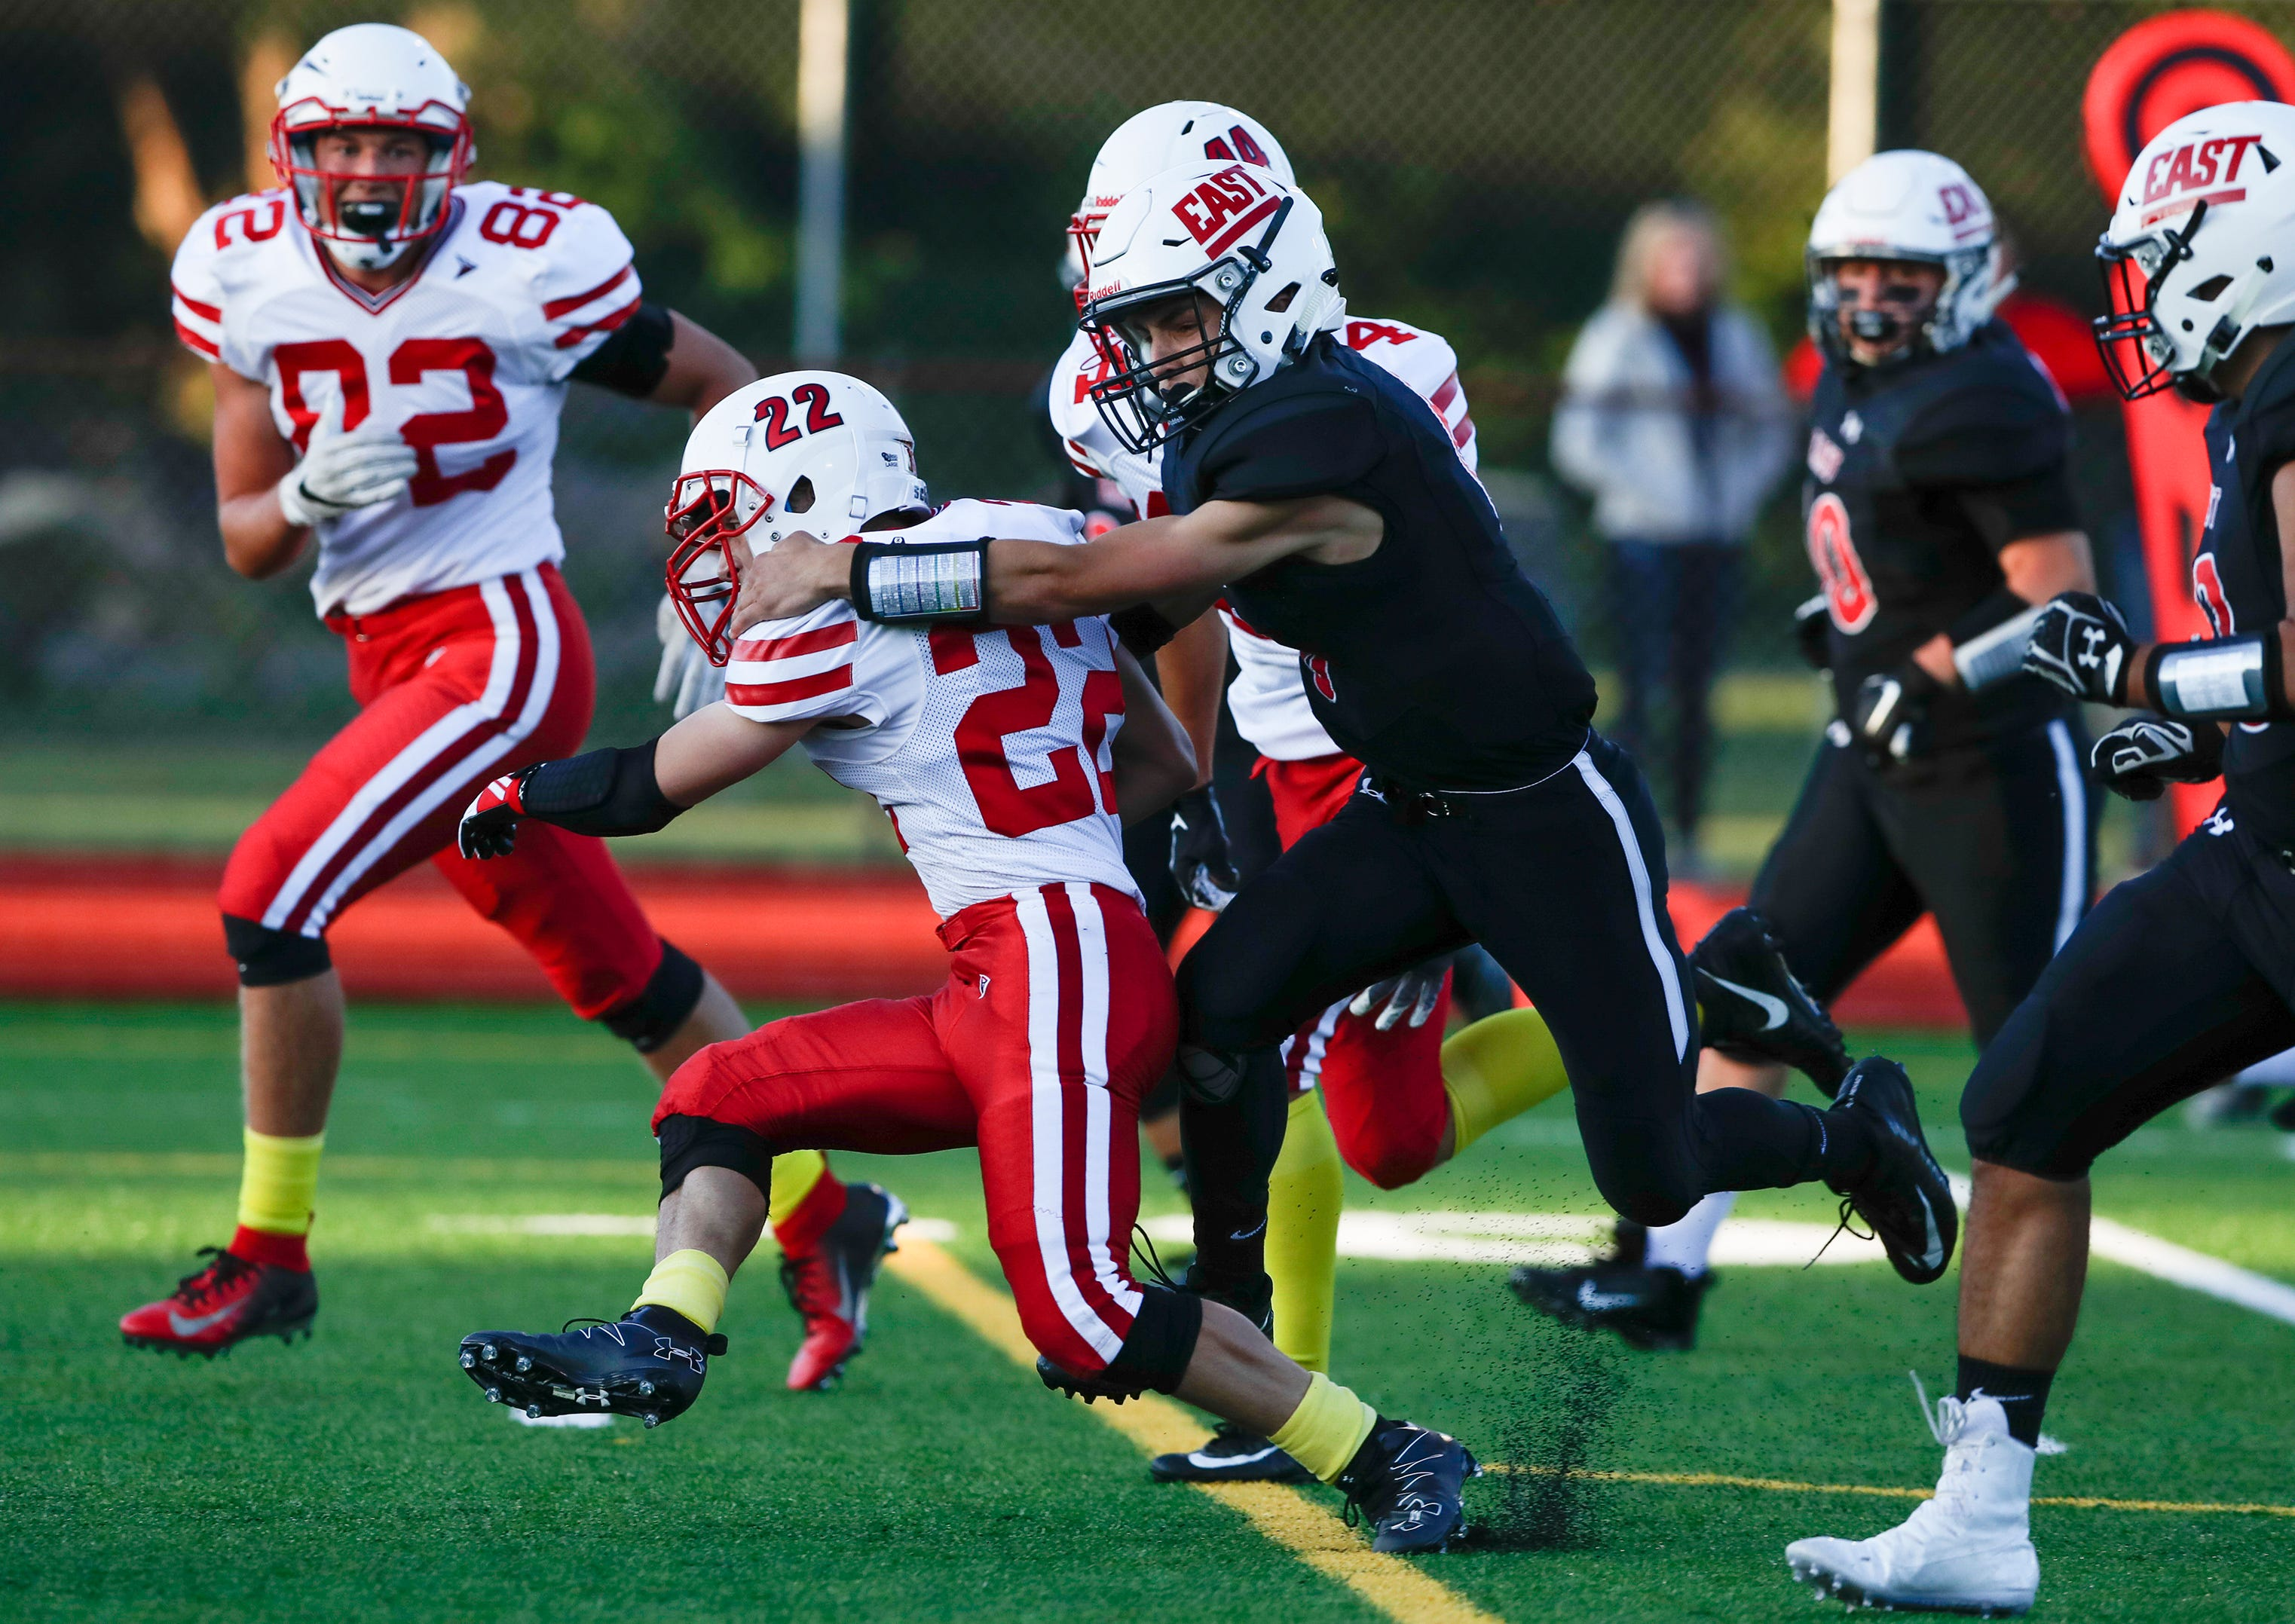 Seymour cruises past Green Bay East with big first half